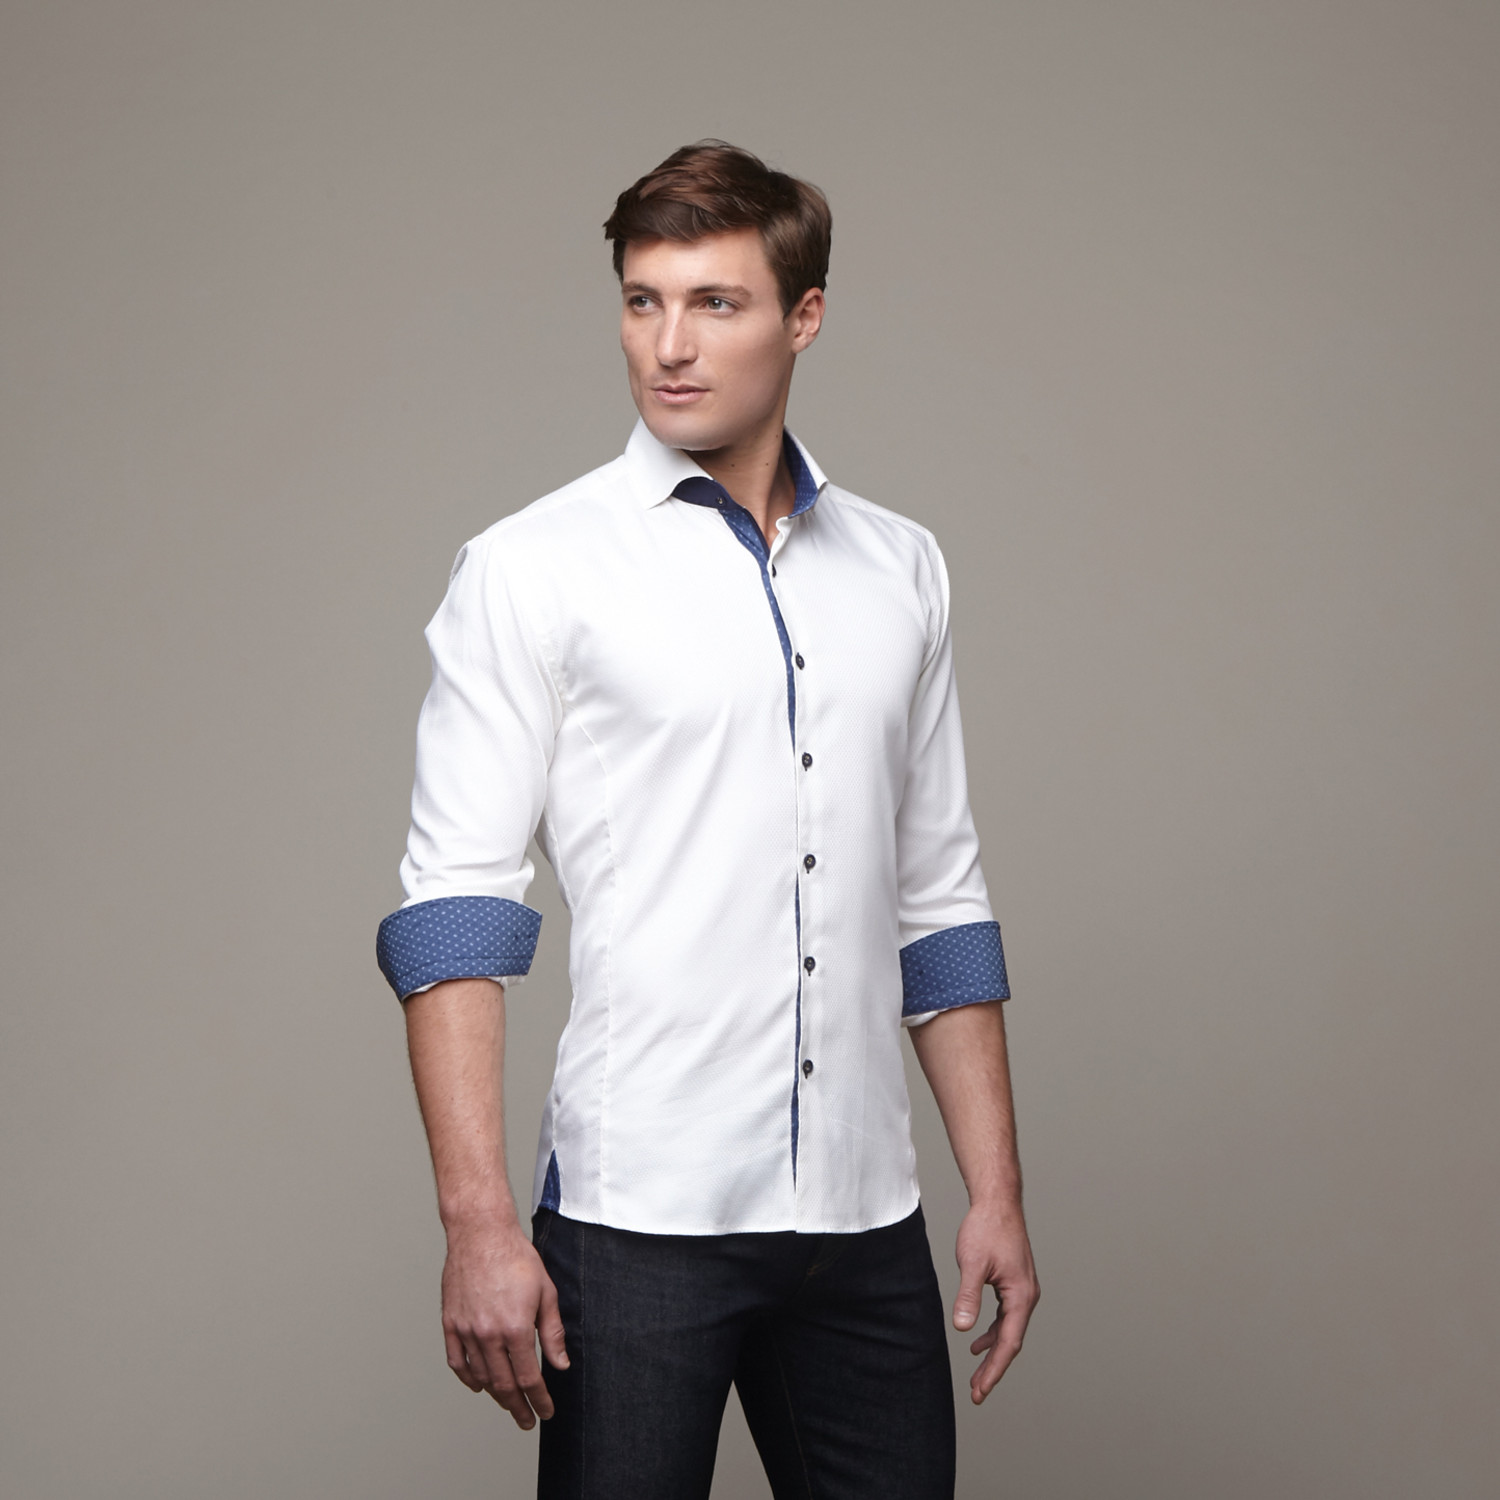 Wall street dress shirt off white navy s maceoo for White military dress shirt